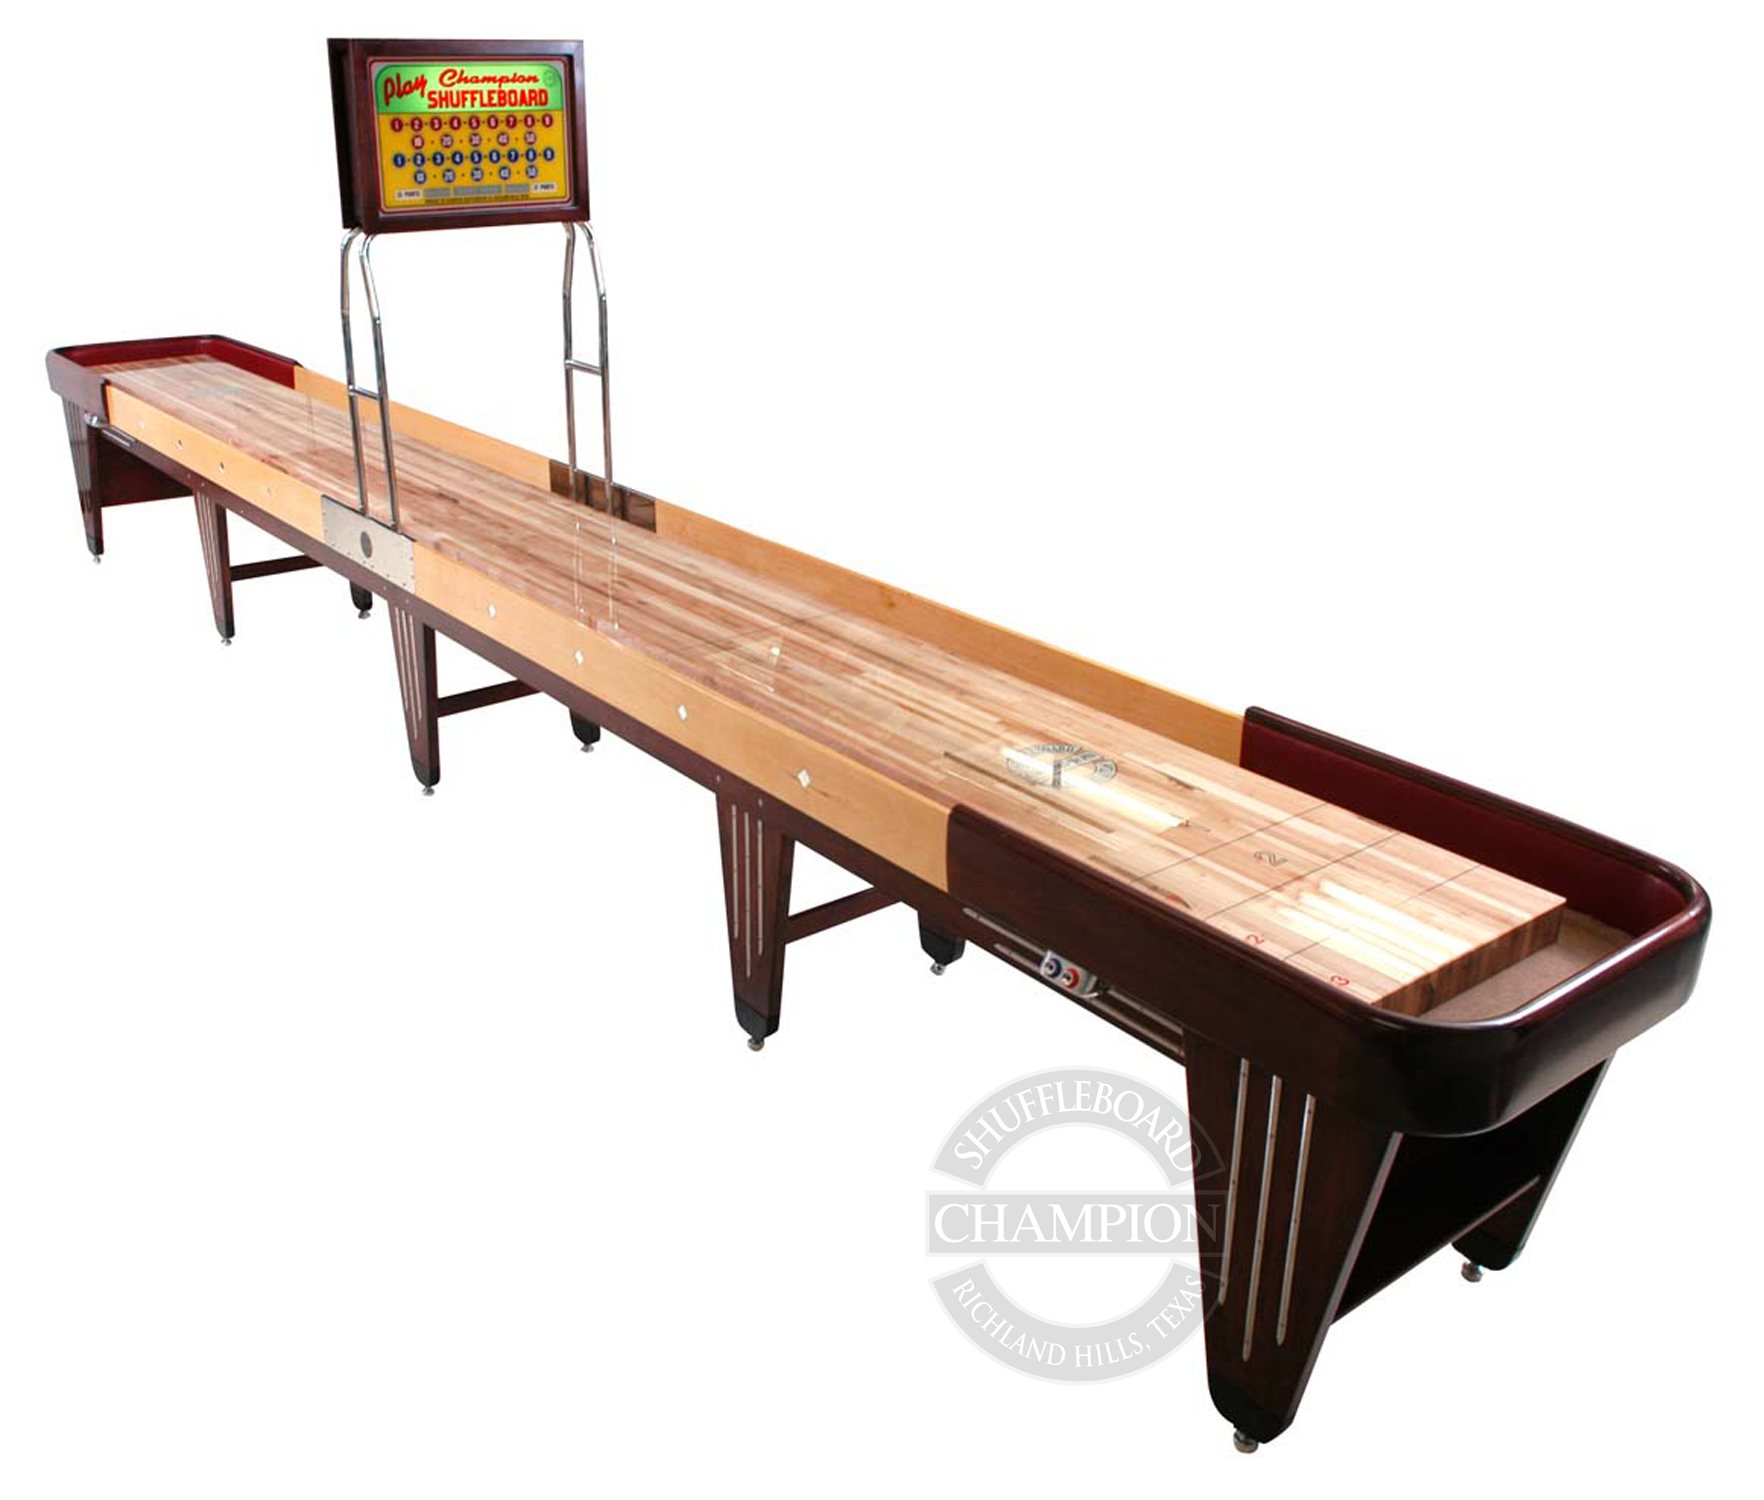 """Champion Vintage Charleston  Specifications  Playfield Size: 3"""" thick x 20"""" wide  Cradle Lengths: 12' - 22' (22' tournament size)  Width: 31"""" without scoring unit; 36"""" with scoring unit  Height: 30"""" to the top of the playfield  Weight: 50 lbs per foot (approximate)"""